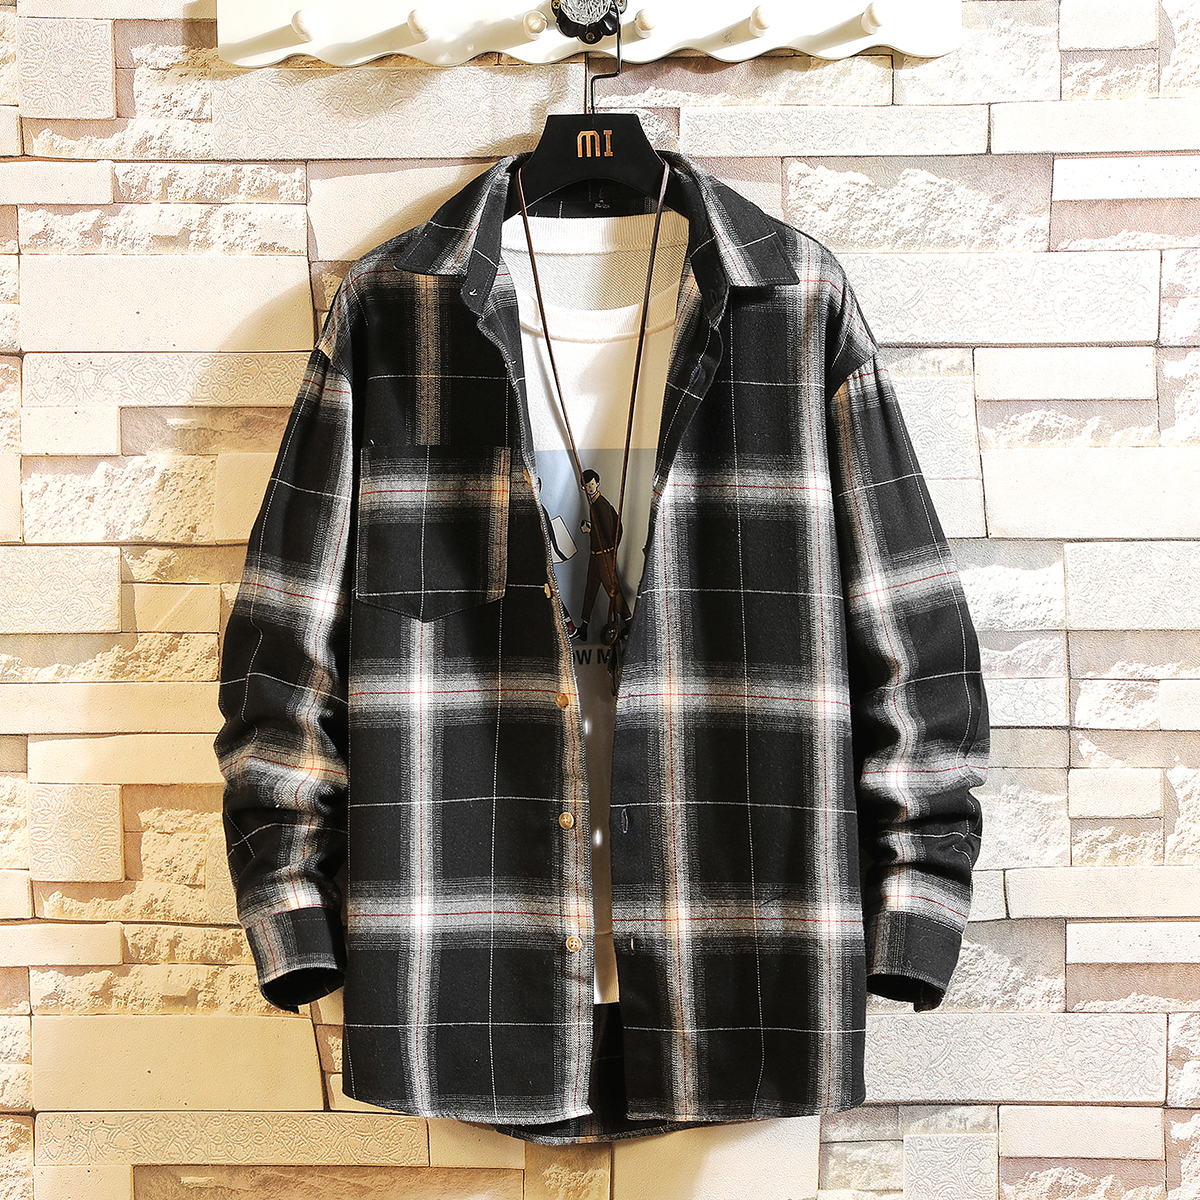 HIP HOP Streetwear Casual Oversize Plaid Flannel White Black Shirt Men Long Sleeve 2020 Loose Spring Autumn Korea Clothes